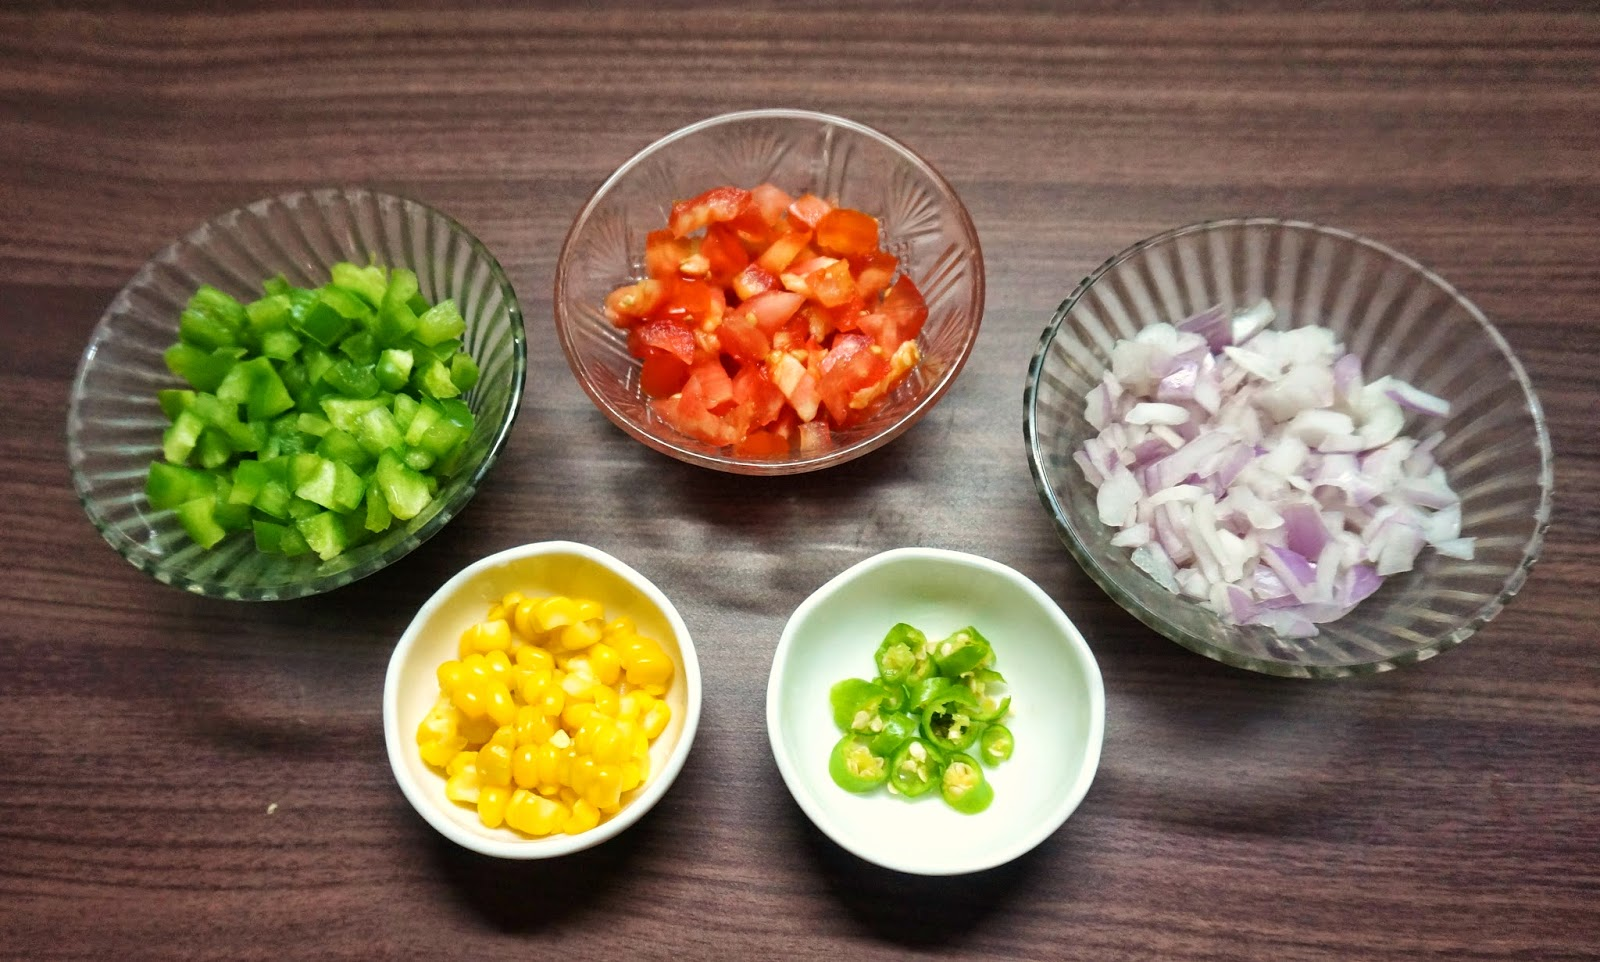 Onion, tomato, bell pepper, green chilly, corn